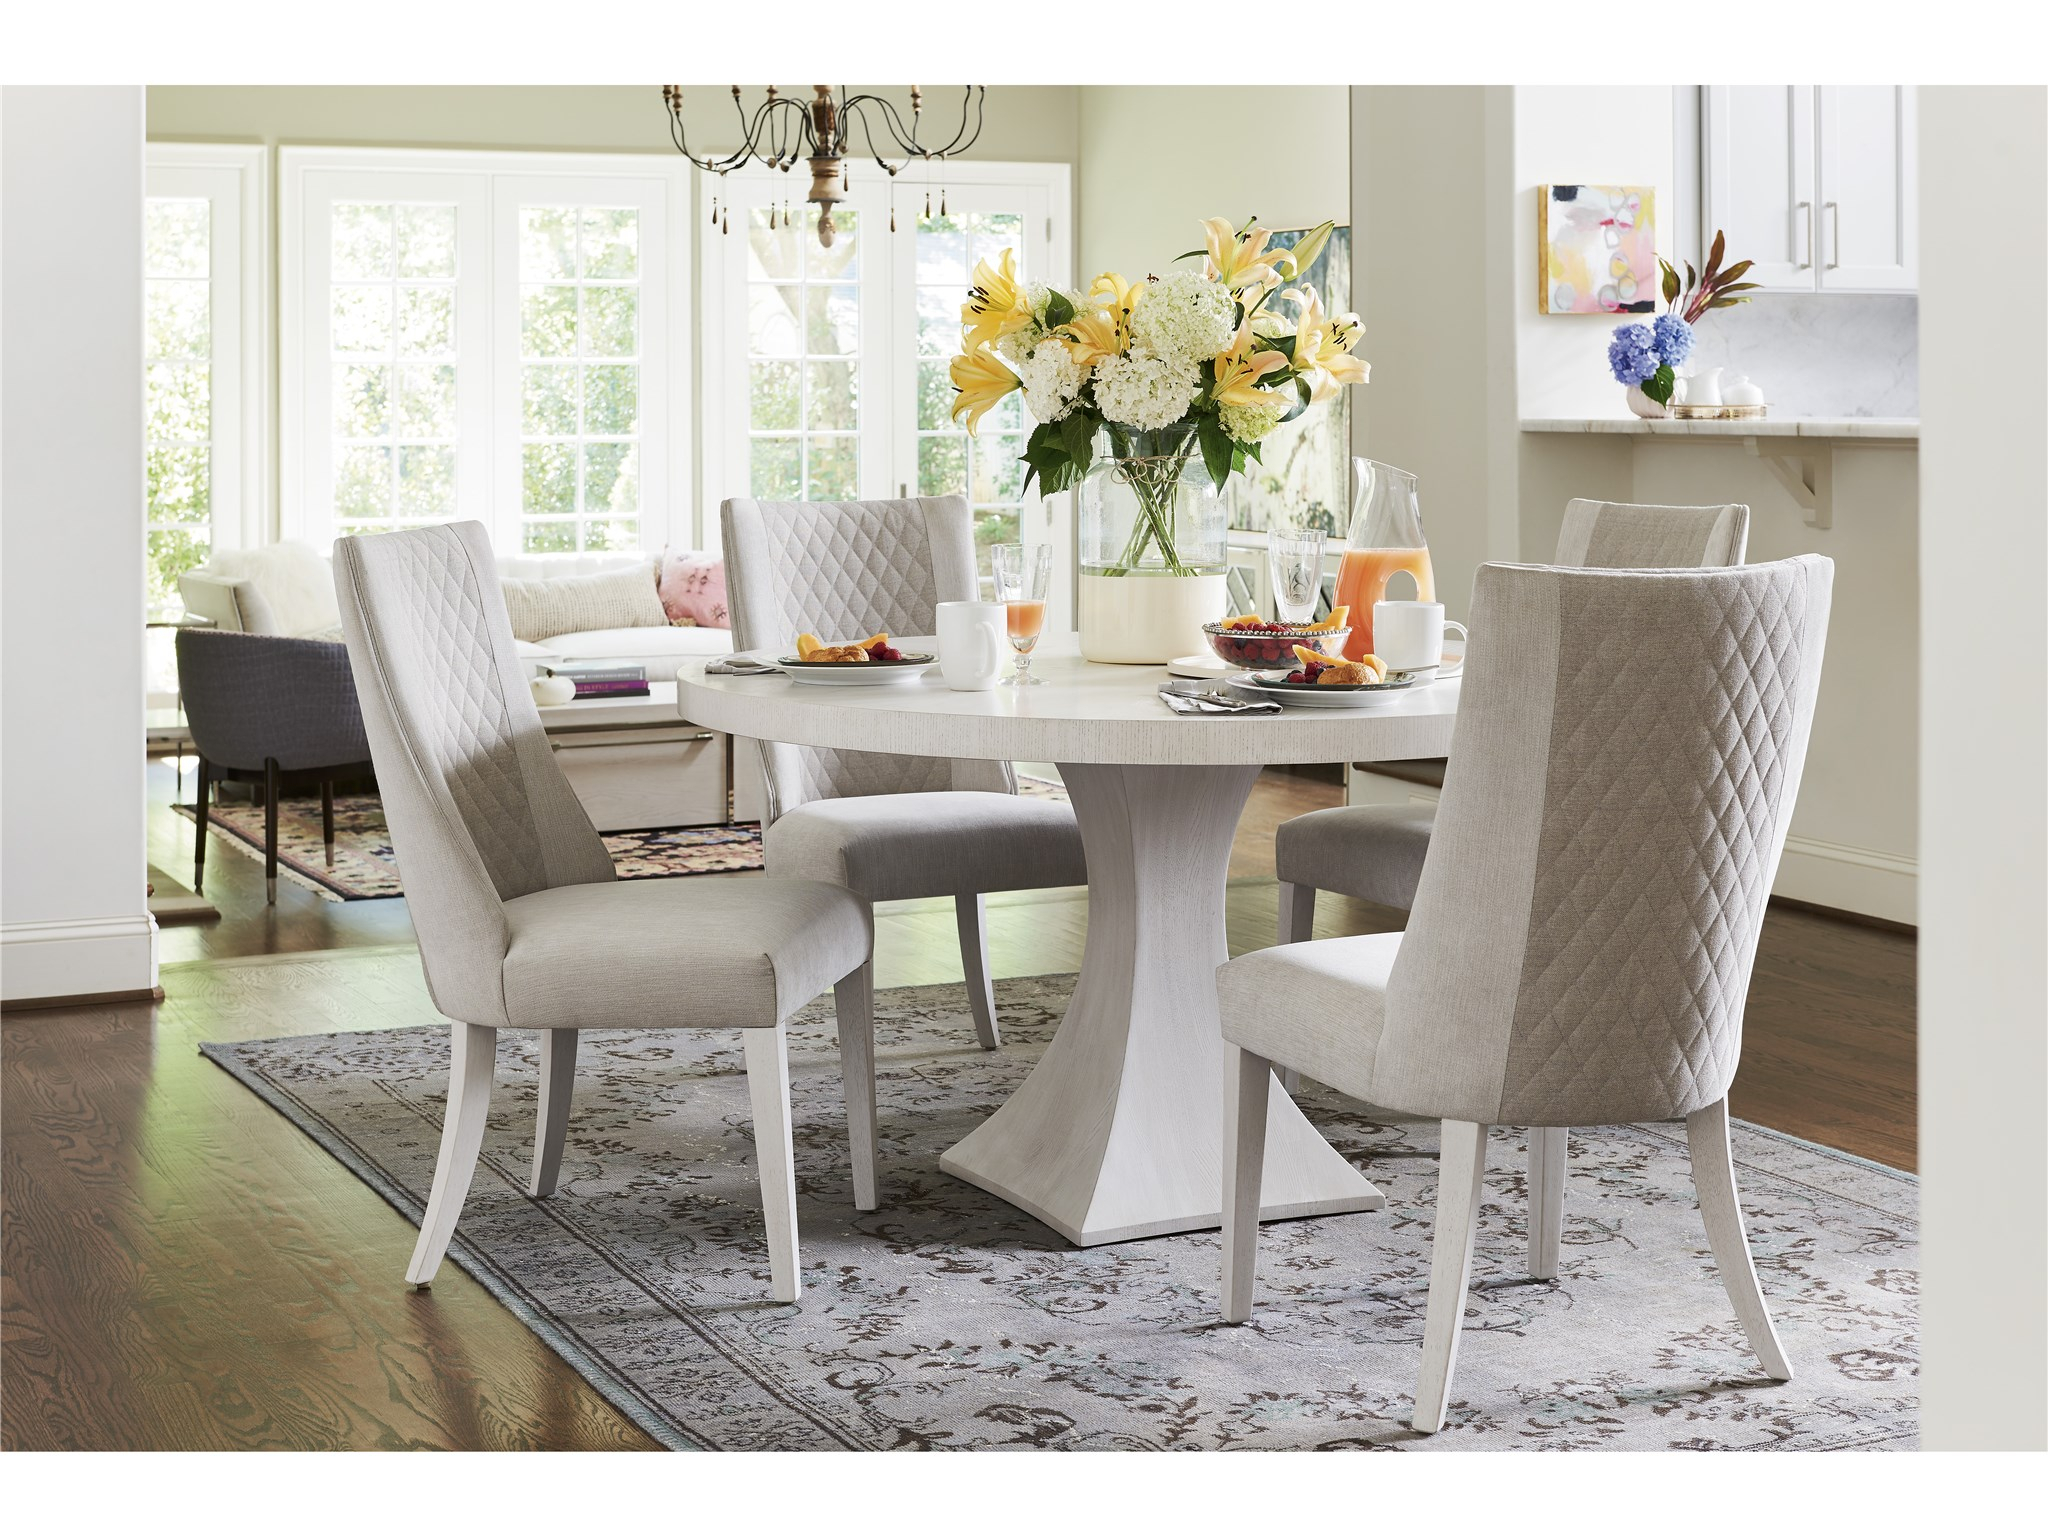 Paradox Integrity Dining Table | Universal Furniture With Most Recent Giles 3 Piece Dining Sets (View 2 of 20)